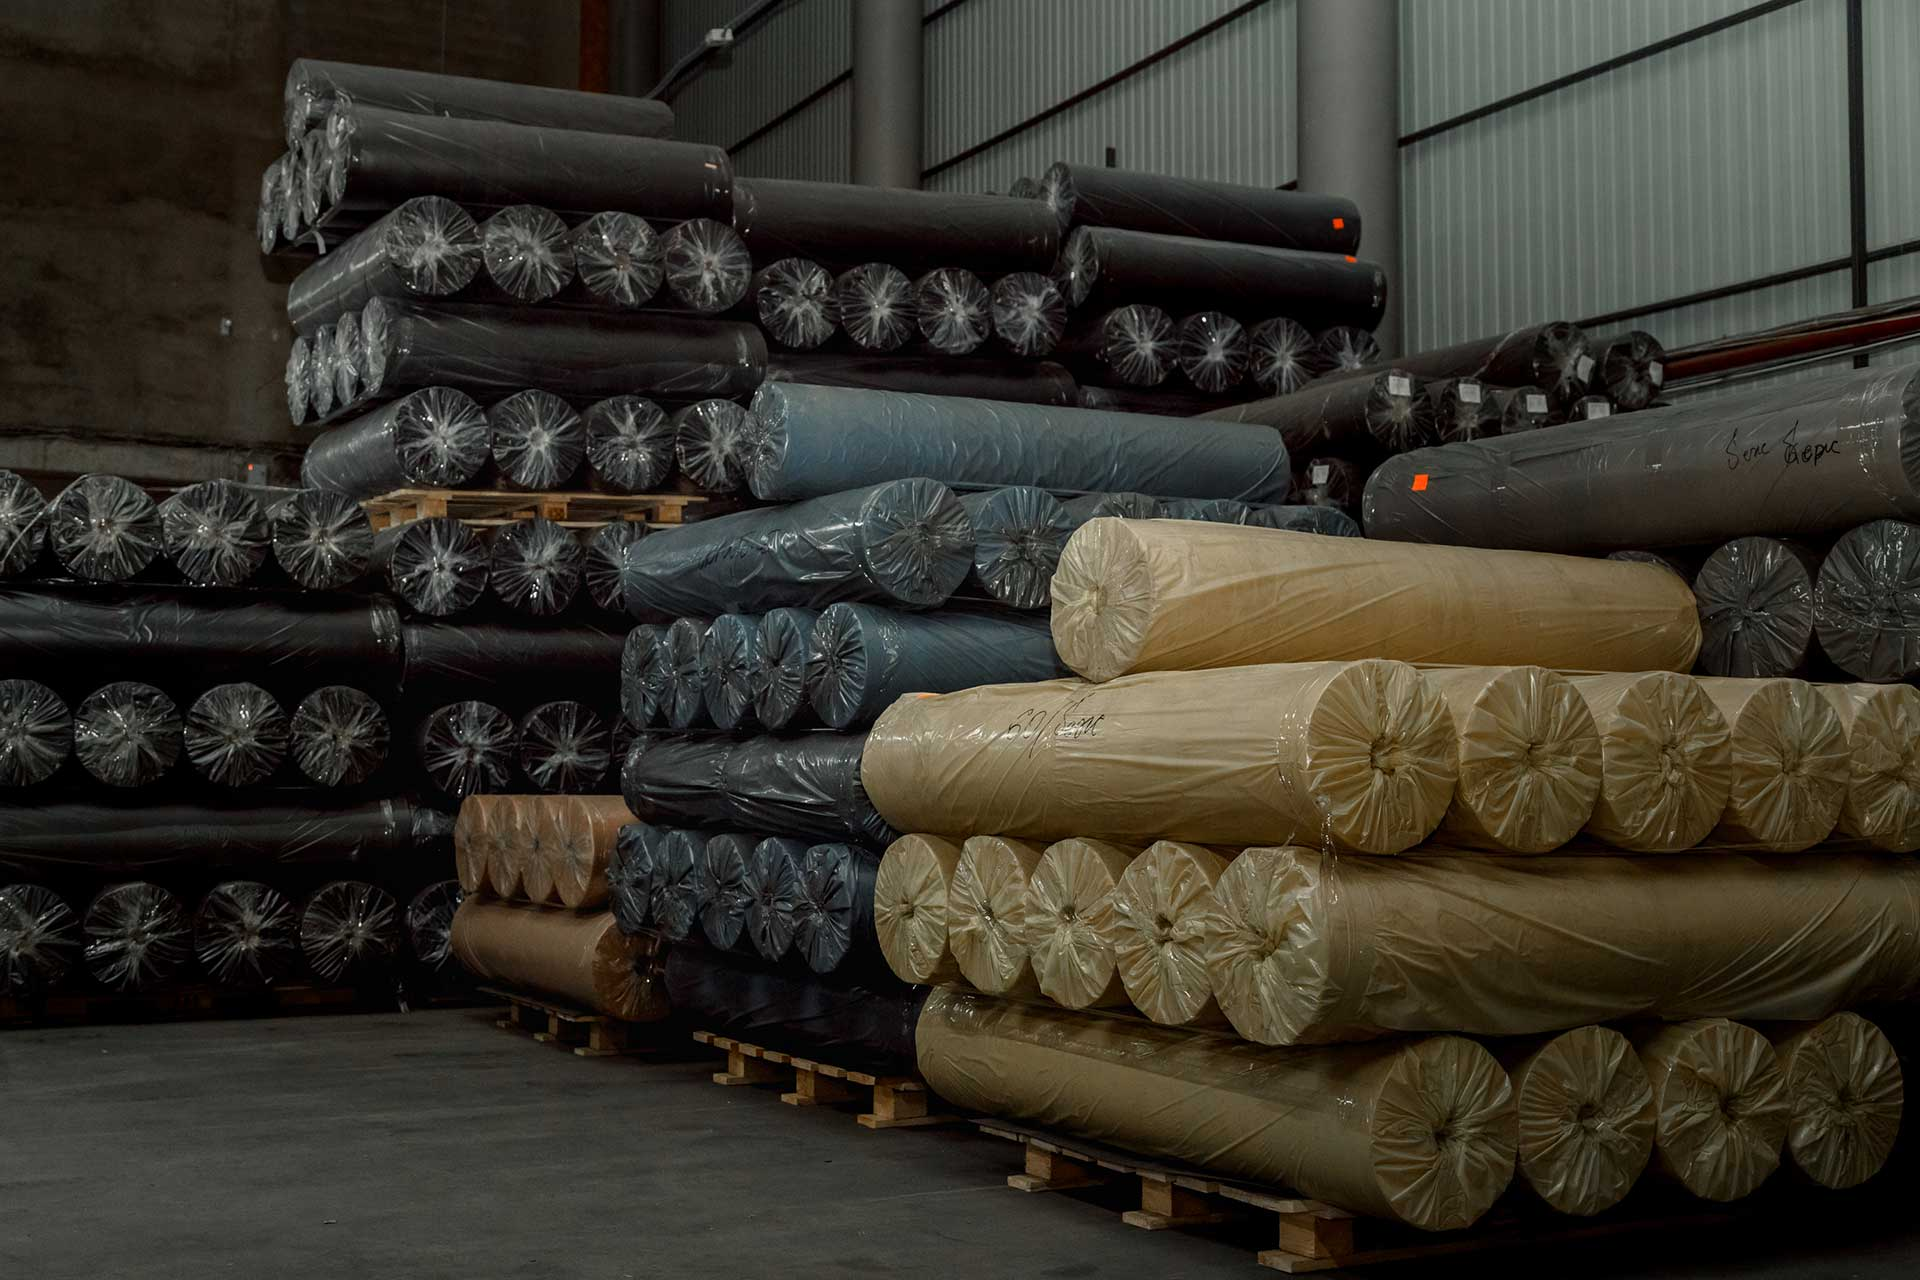 pp spunbond non woven fabric manufacturing process